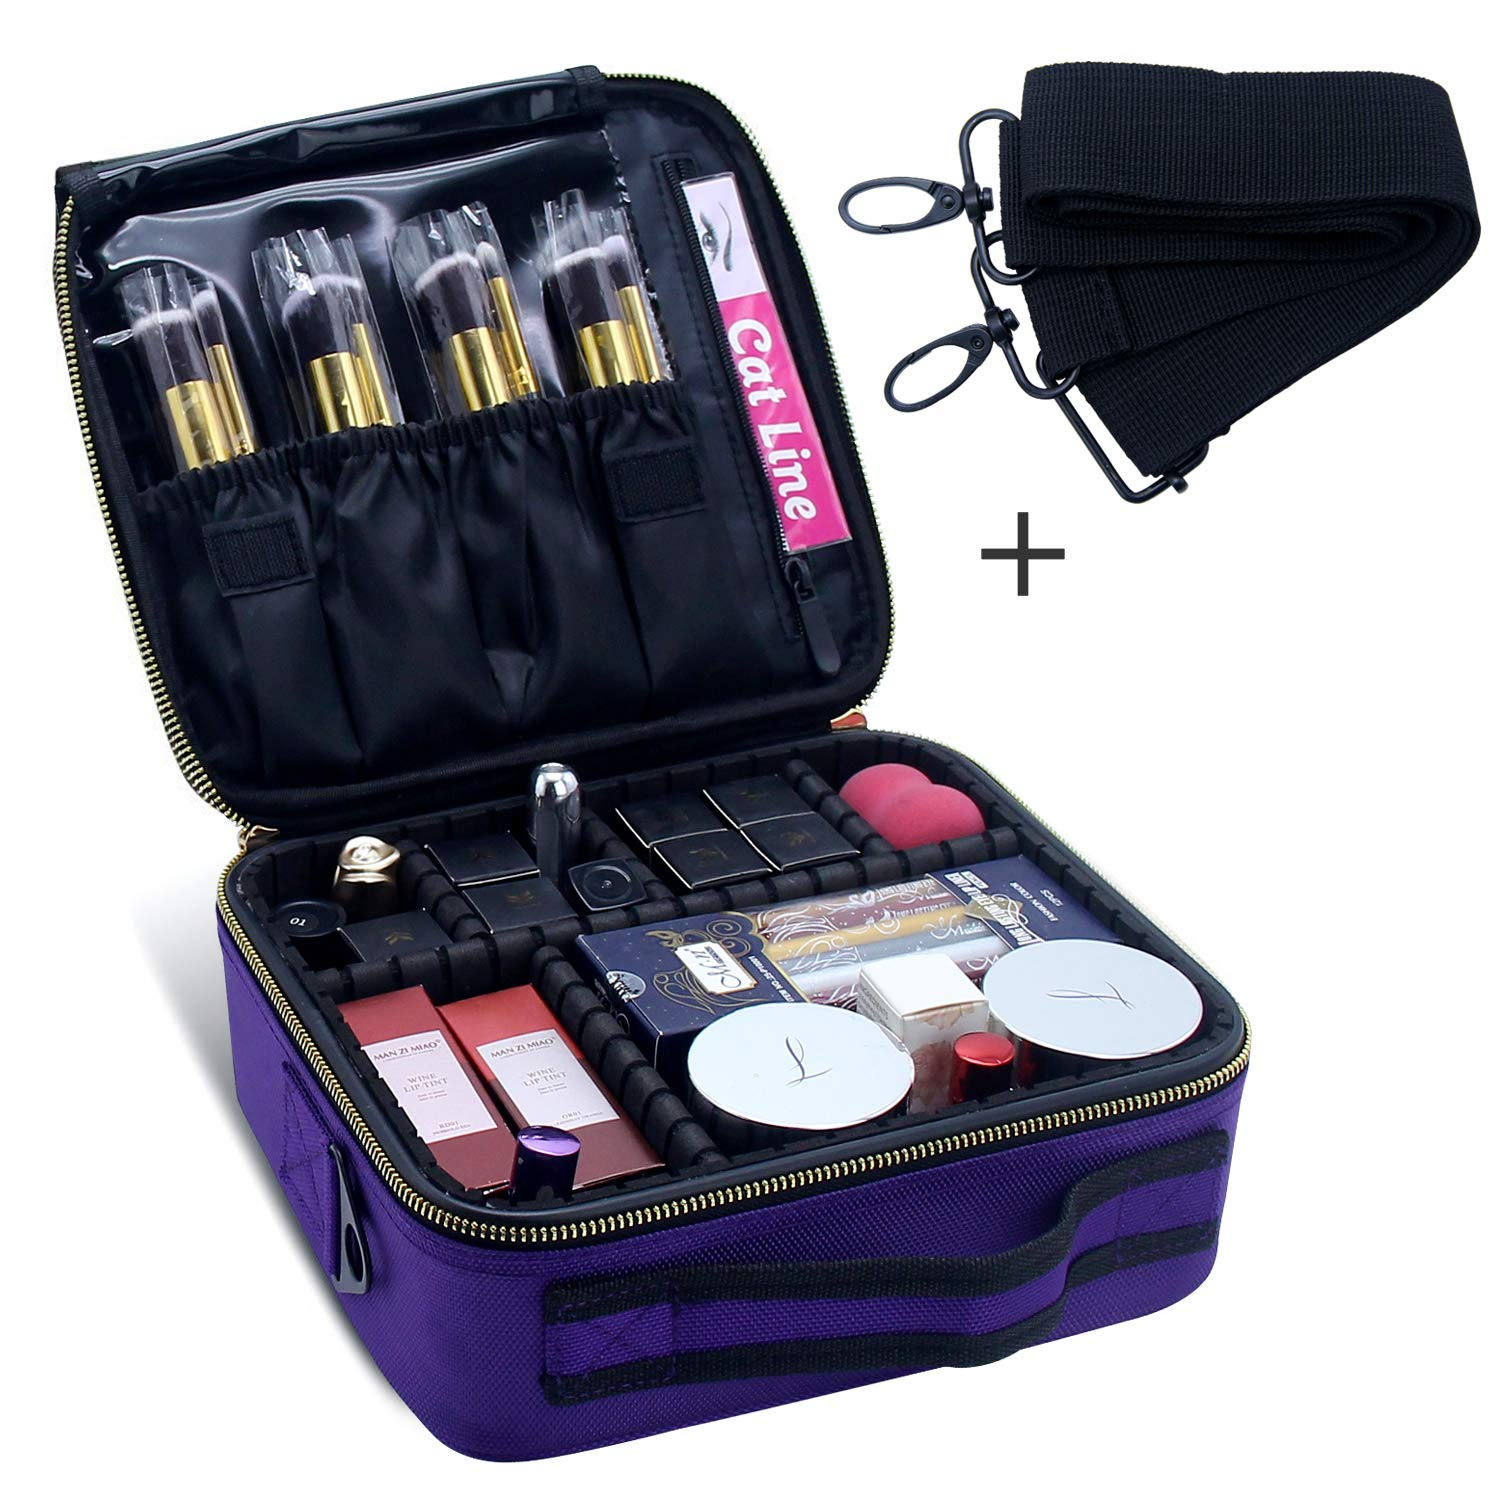 Portable Makeup Luggage, Chomeiu 2 Layer Large Size Make Up Bag Adjustable Makeup Box with Compartments Neceser De Maquillaje (Black) FUS